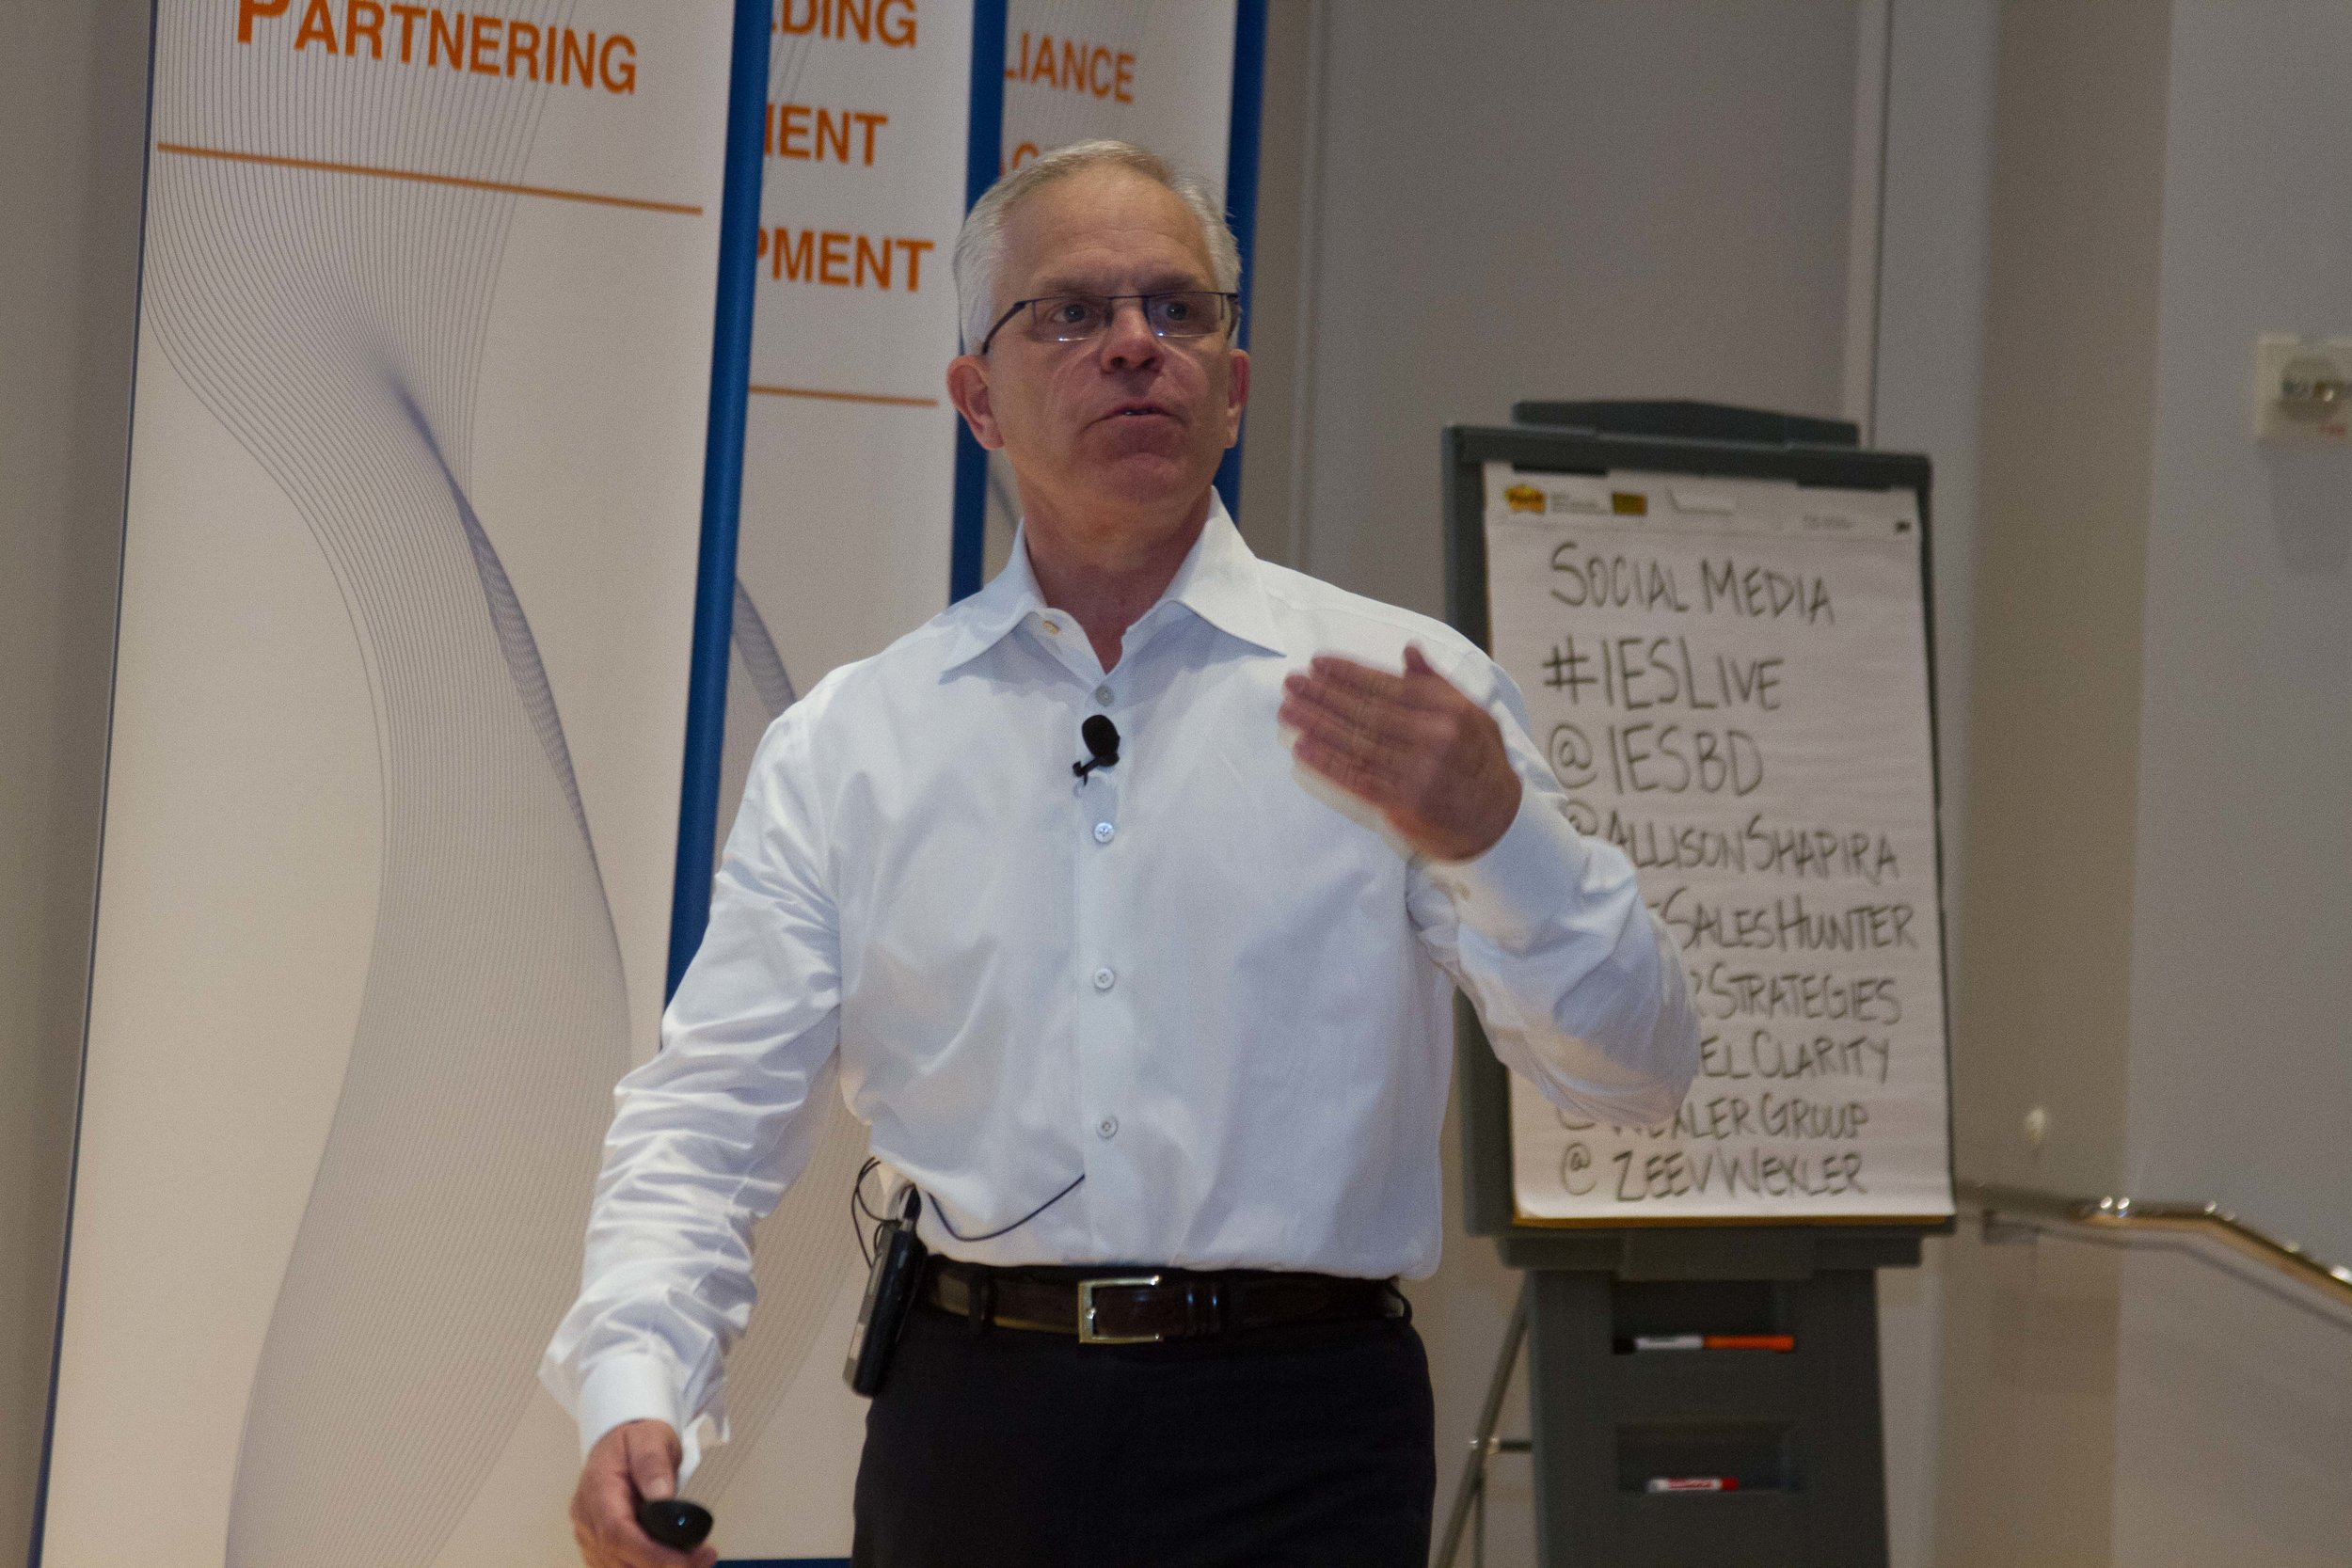 Tom Snyder, co-founder and managing partner of Funnel Clarity